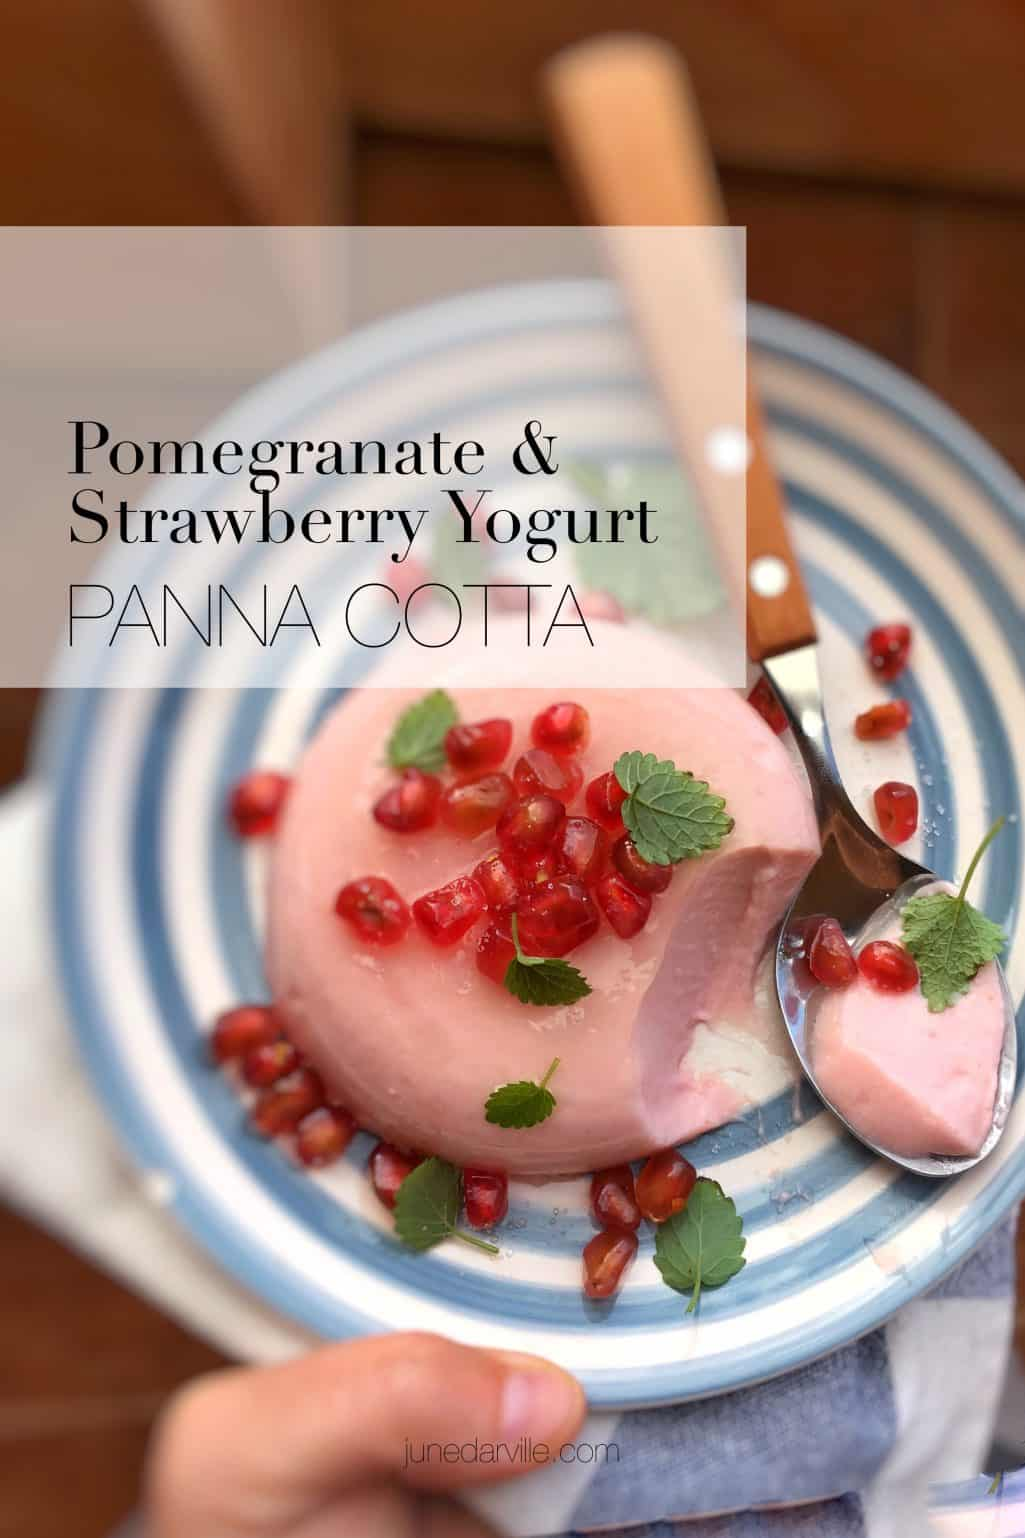 Are you like me not good at making dessert? Then try this super easy strawberry yogurt panna cotta with pomegranate and wow your guests!